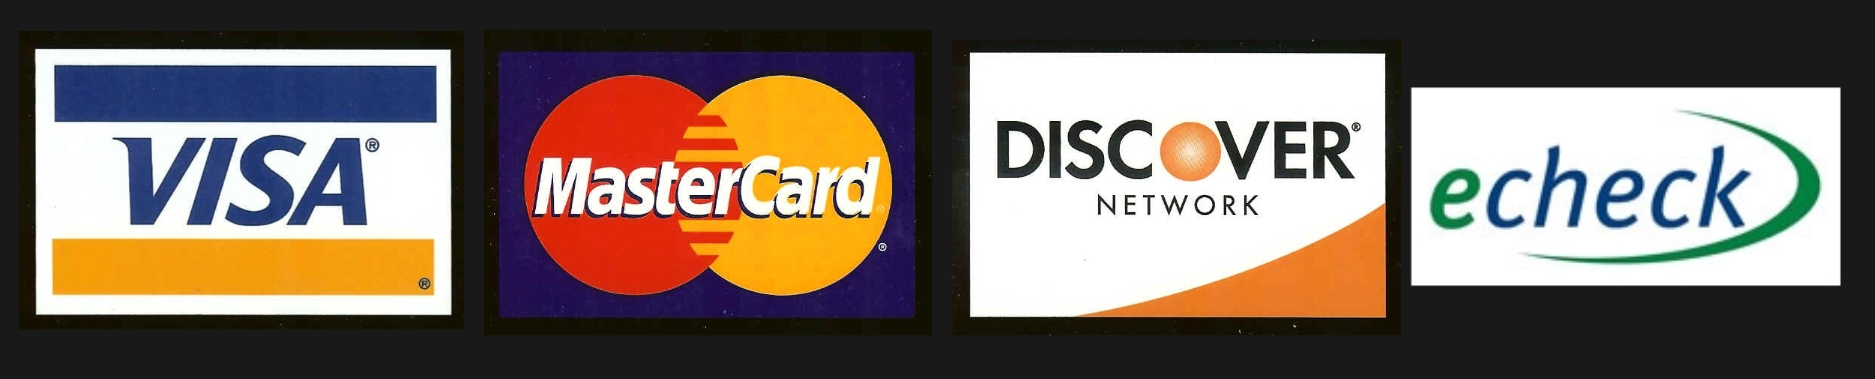 all major credit cards accepted logo. All major credit cards are